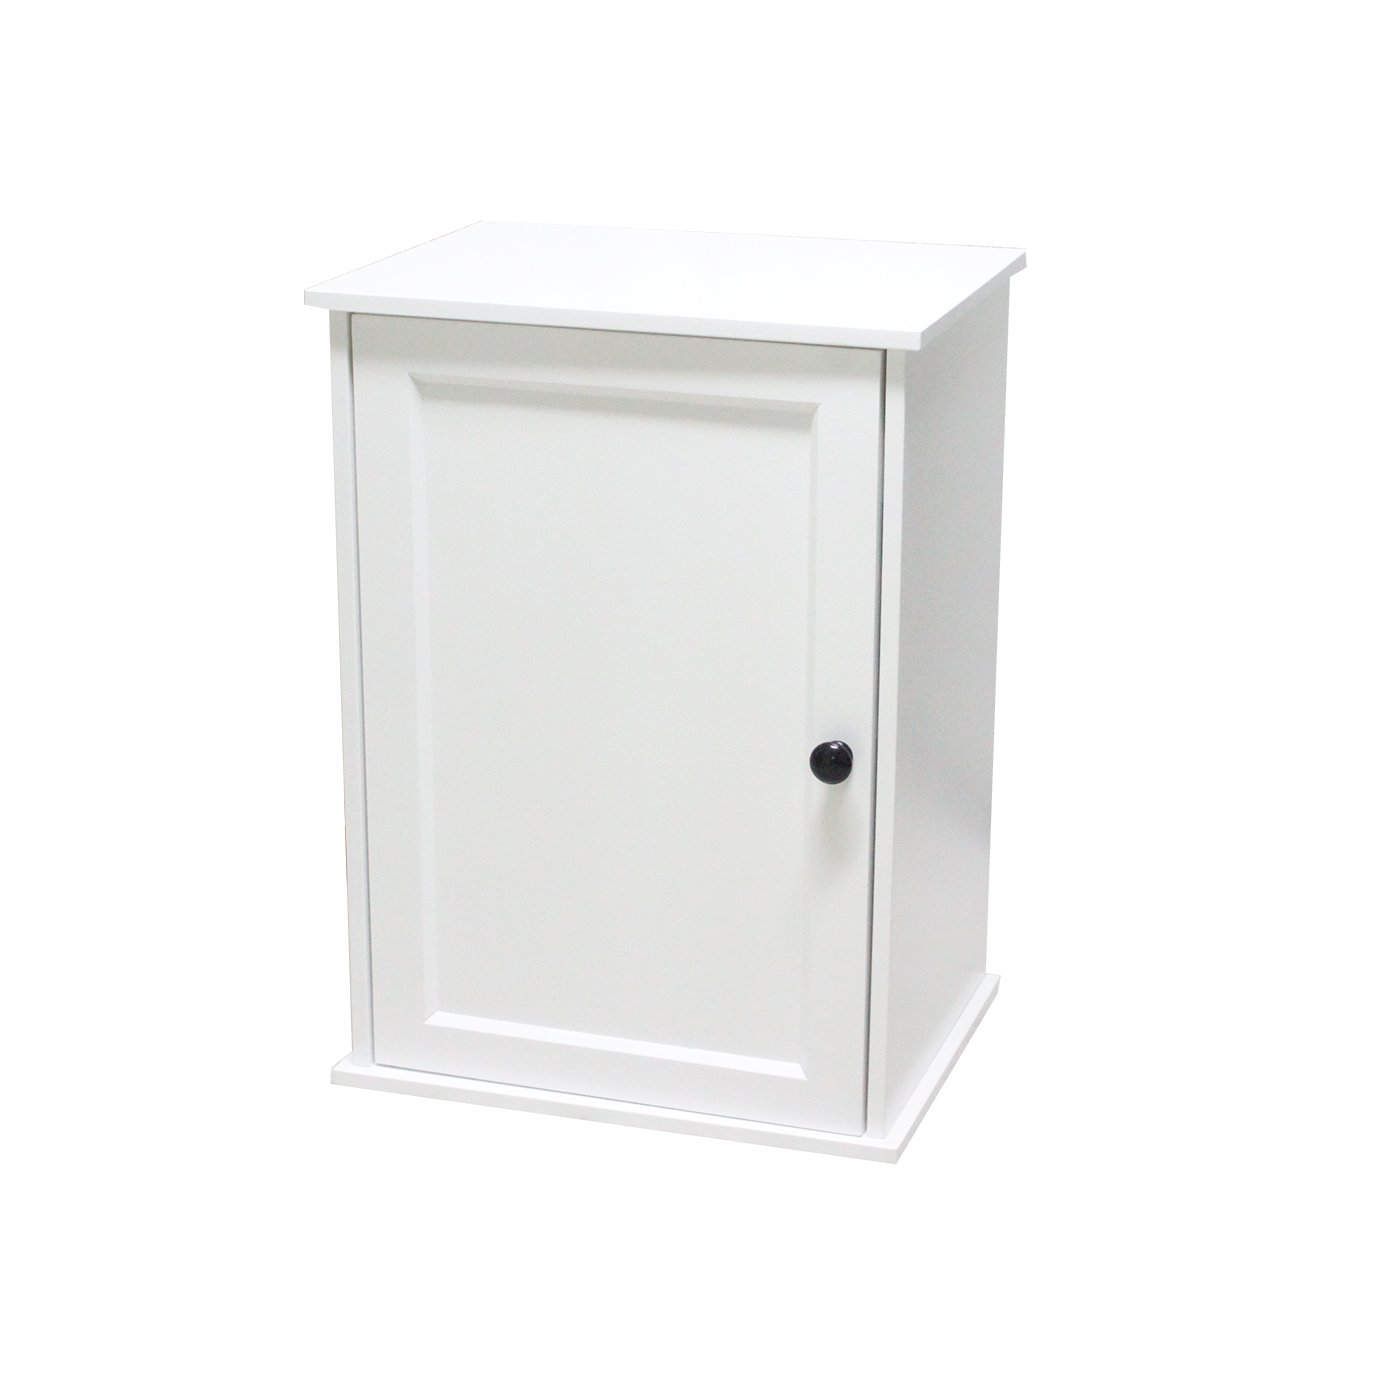 Bathroom cabinet wall hung White modern minimalist bathroom cabinet made of environmentally friendly MDF for small size houses and bathrooms (B40*T30*H55) ease